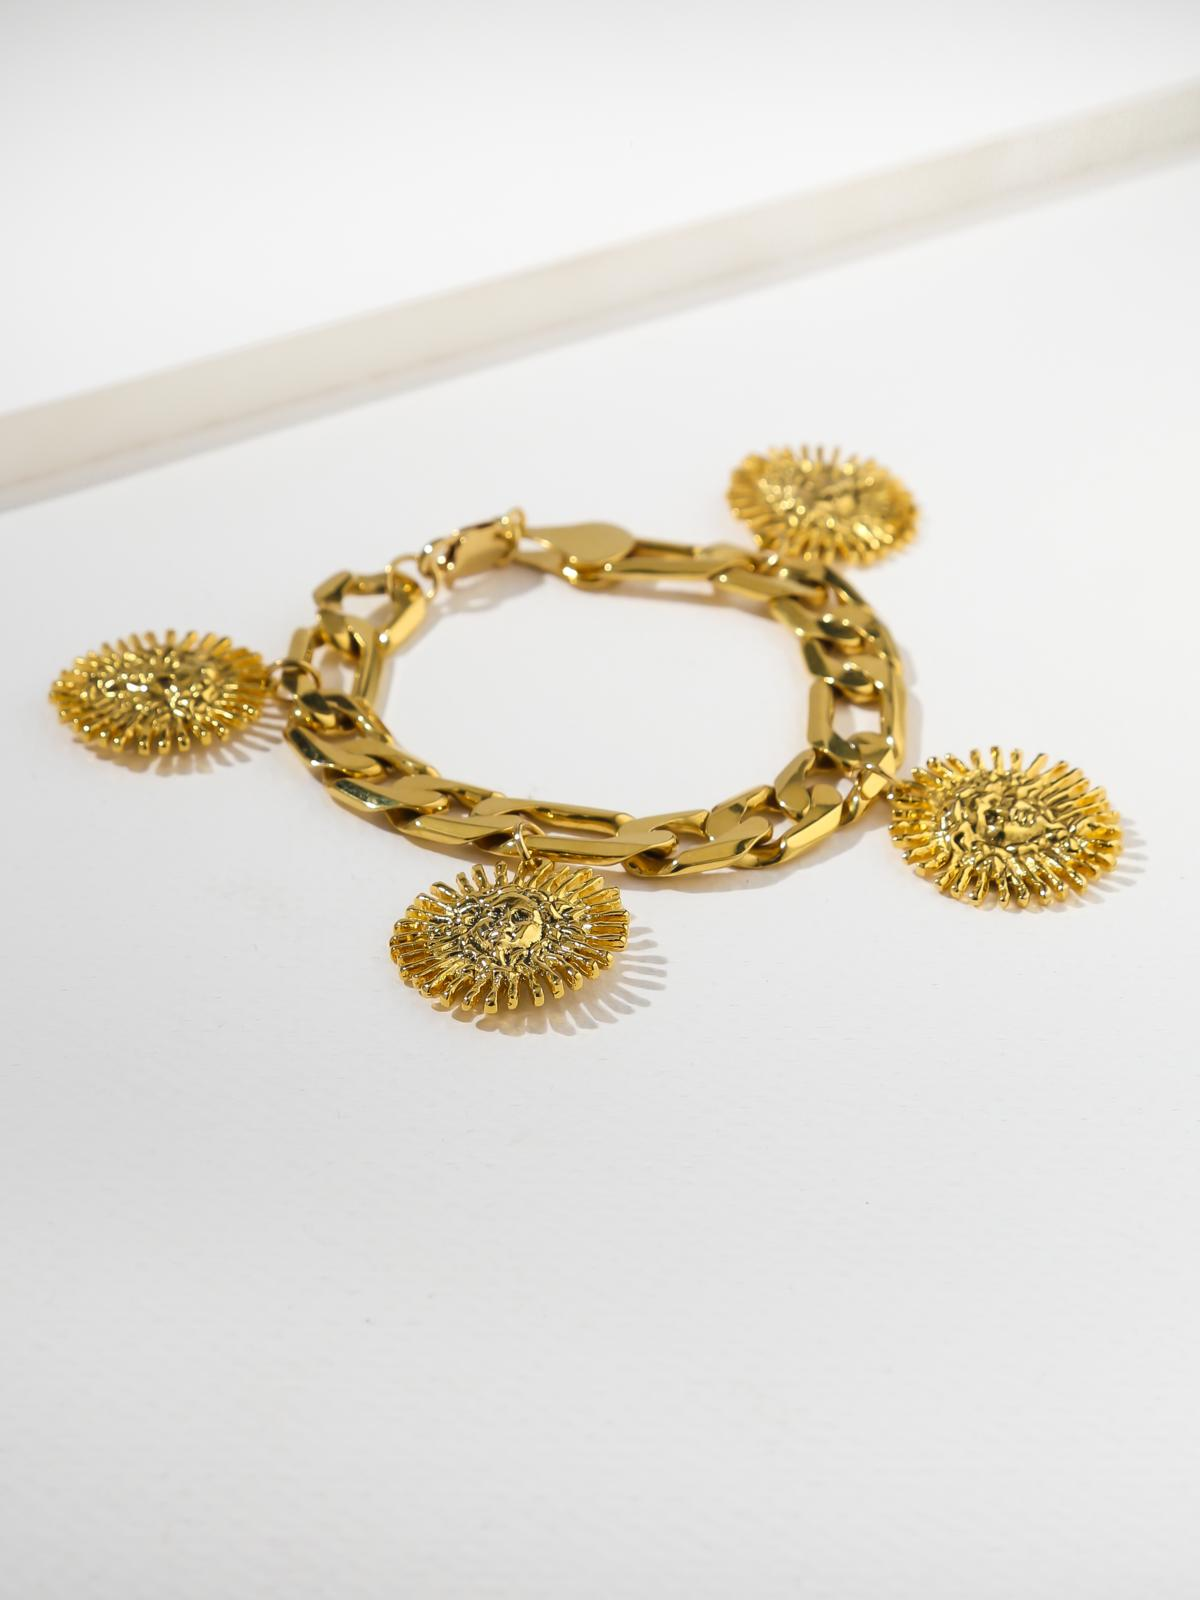 Sale Items The Harlow Medusa Bracelet Vanessa Mooney